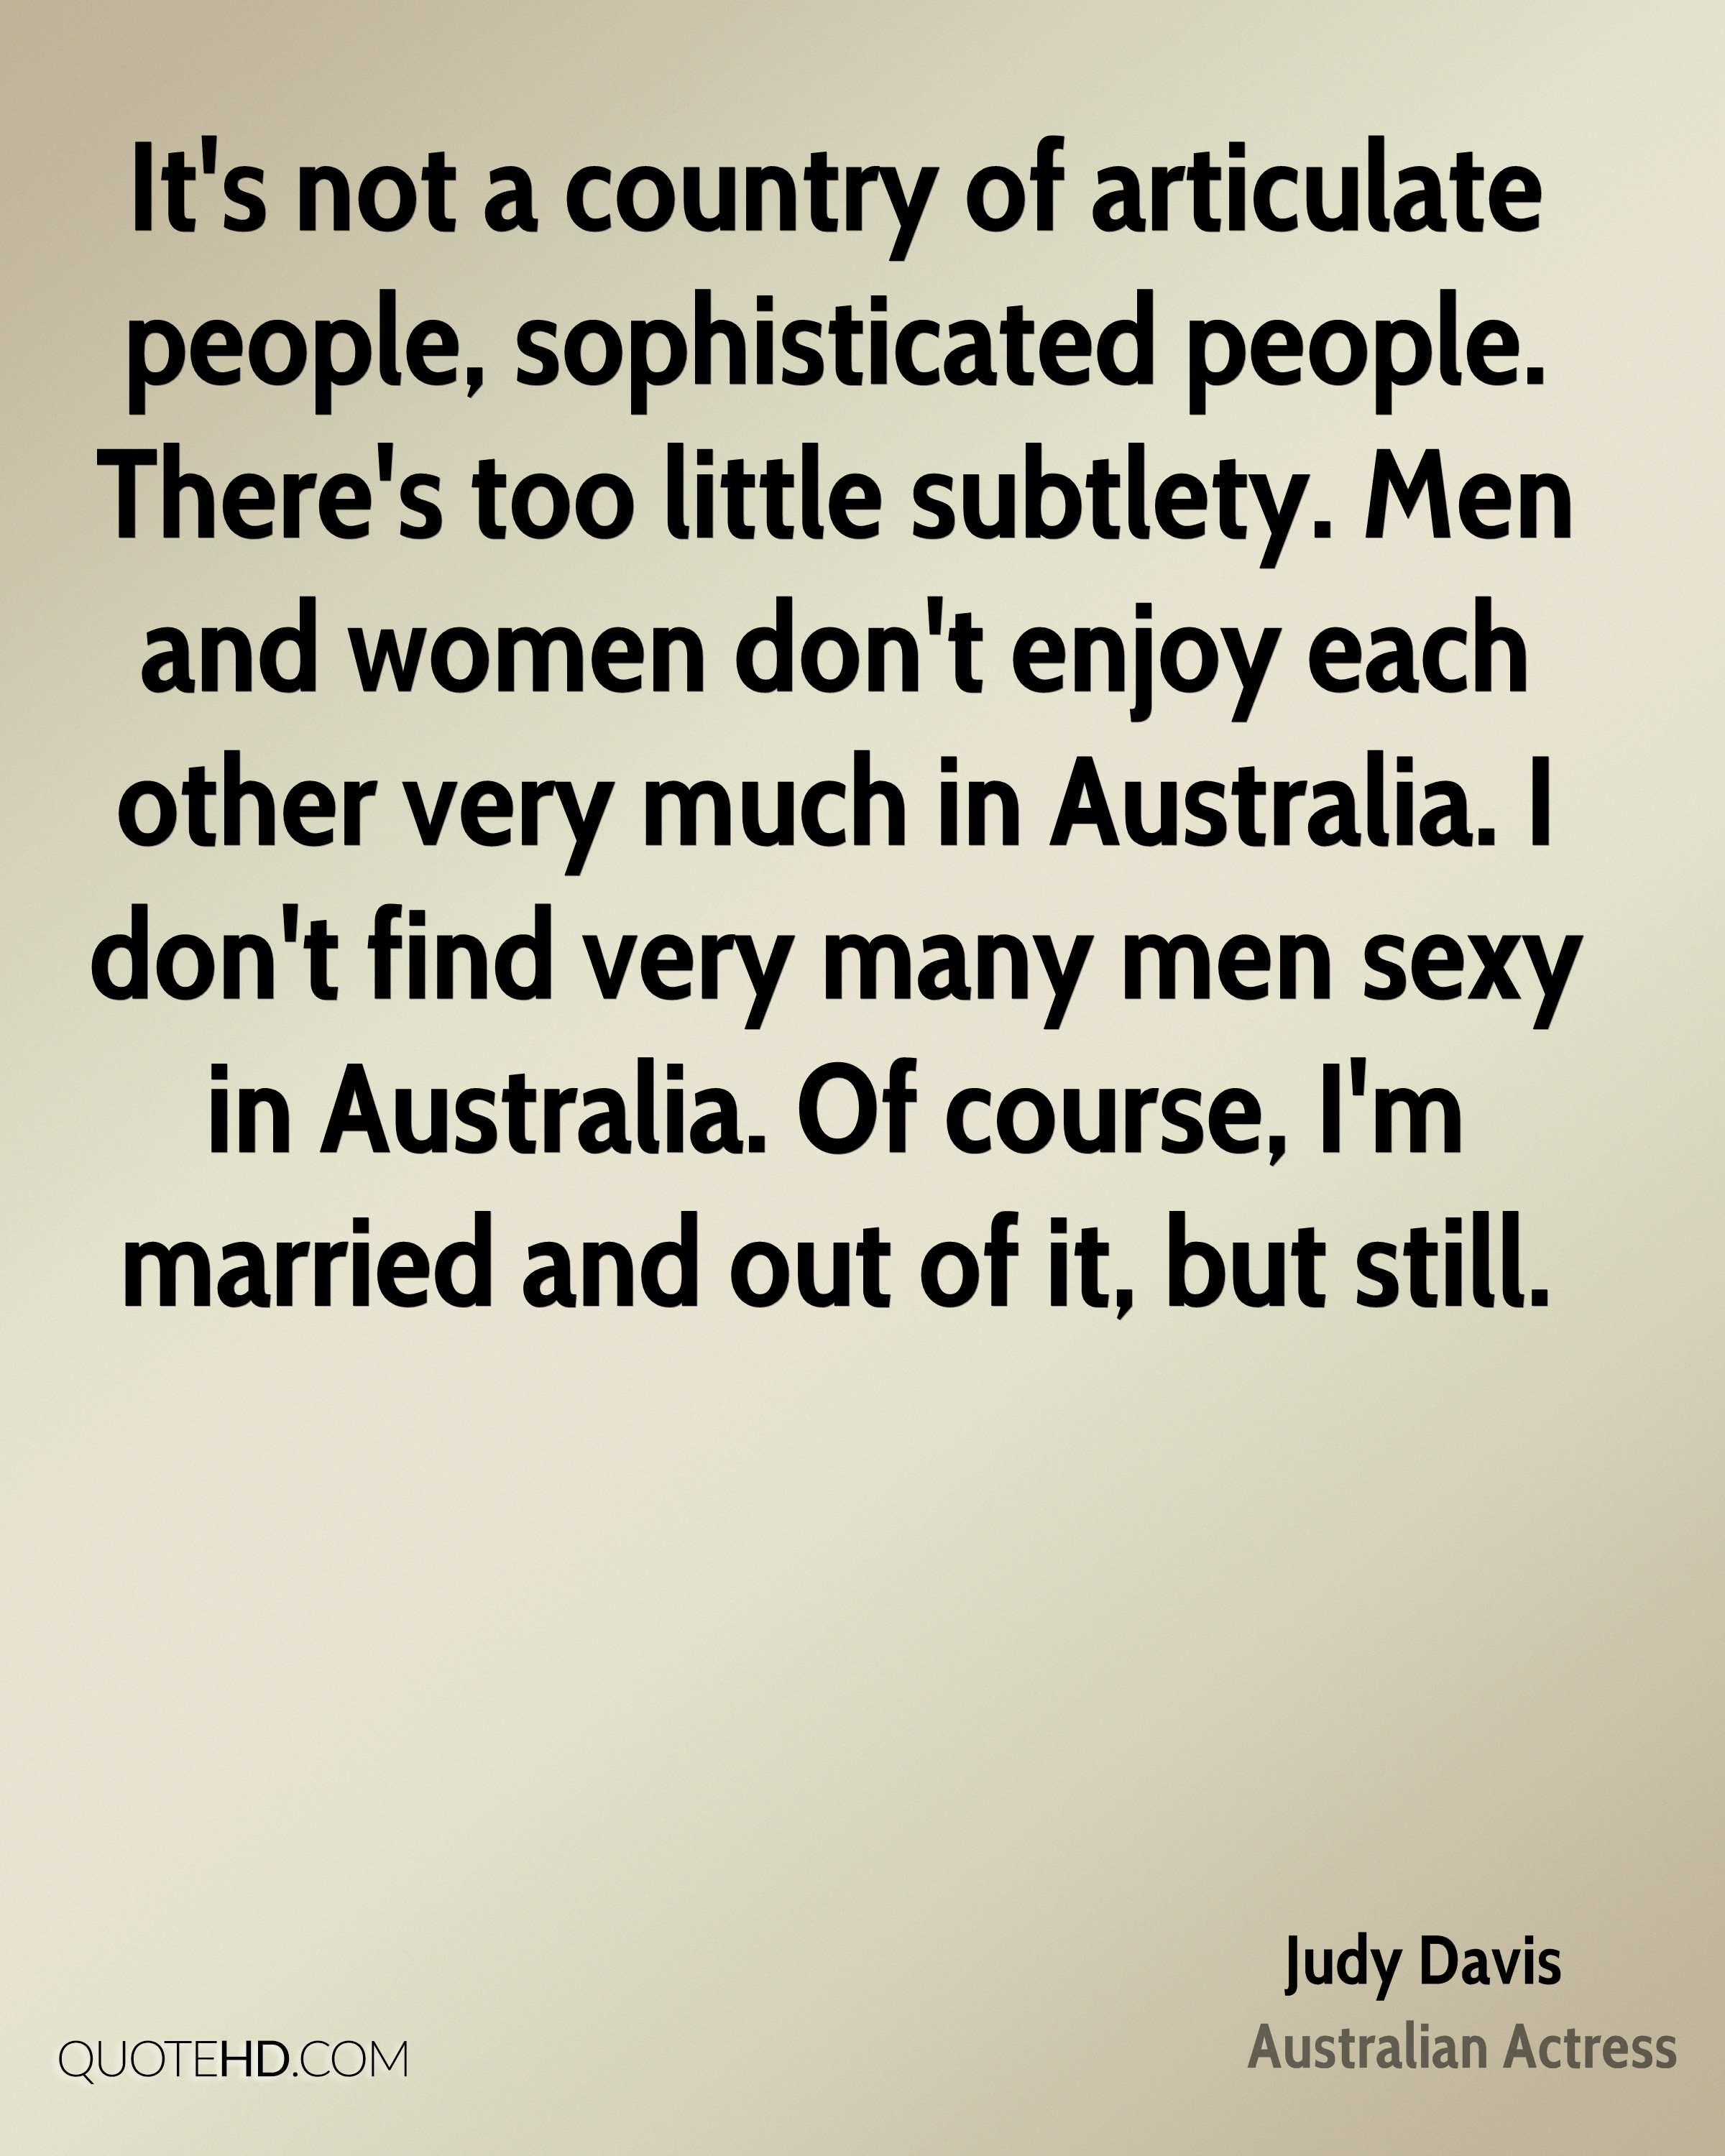 It's not a country of articulate people, sophisticated people. There's too little subtlety. Men and women don't enjoy each other very much in Australia. I don't find very many men sexy in Australia. Of course, I'm married and out of it, but still.